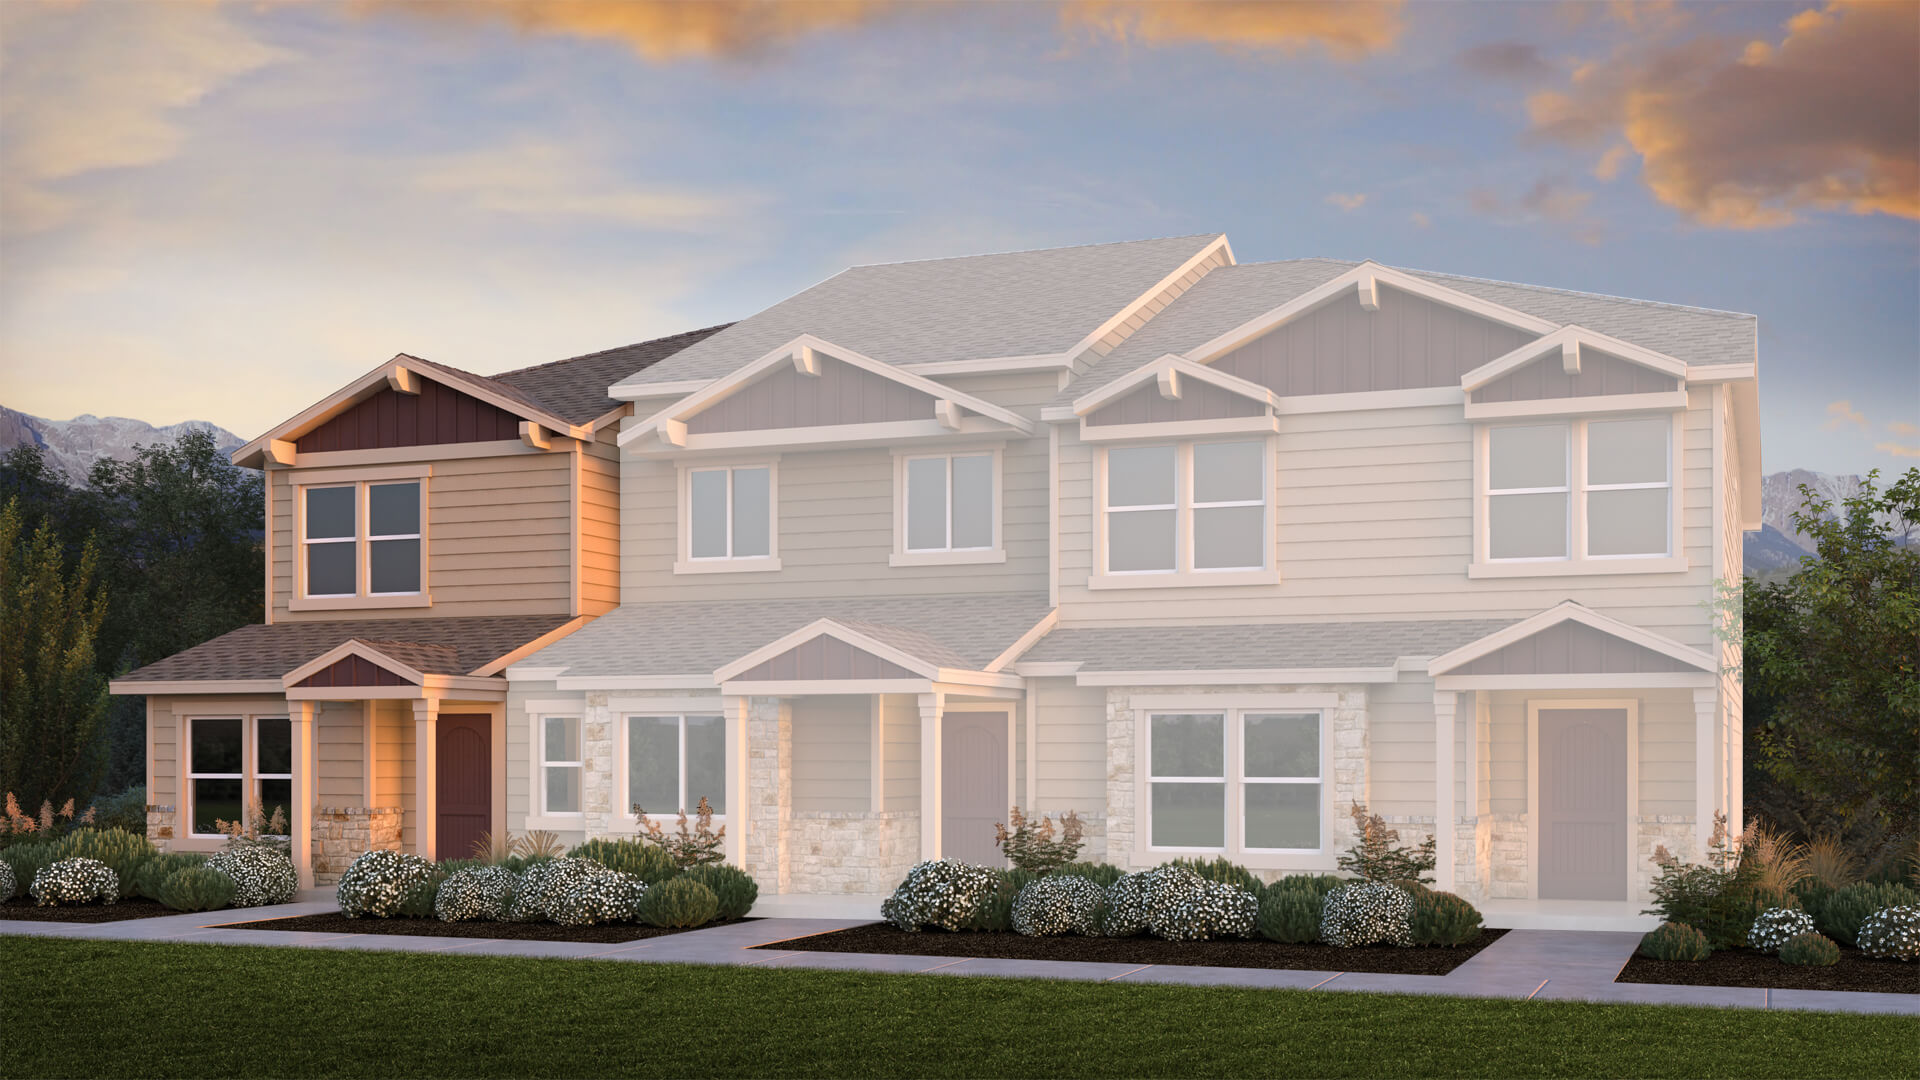 New townhomes in Colorado Springs